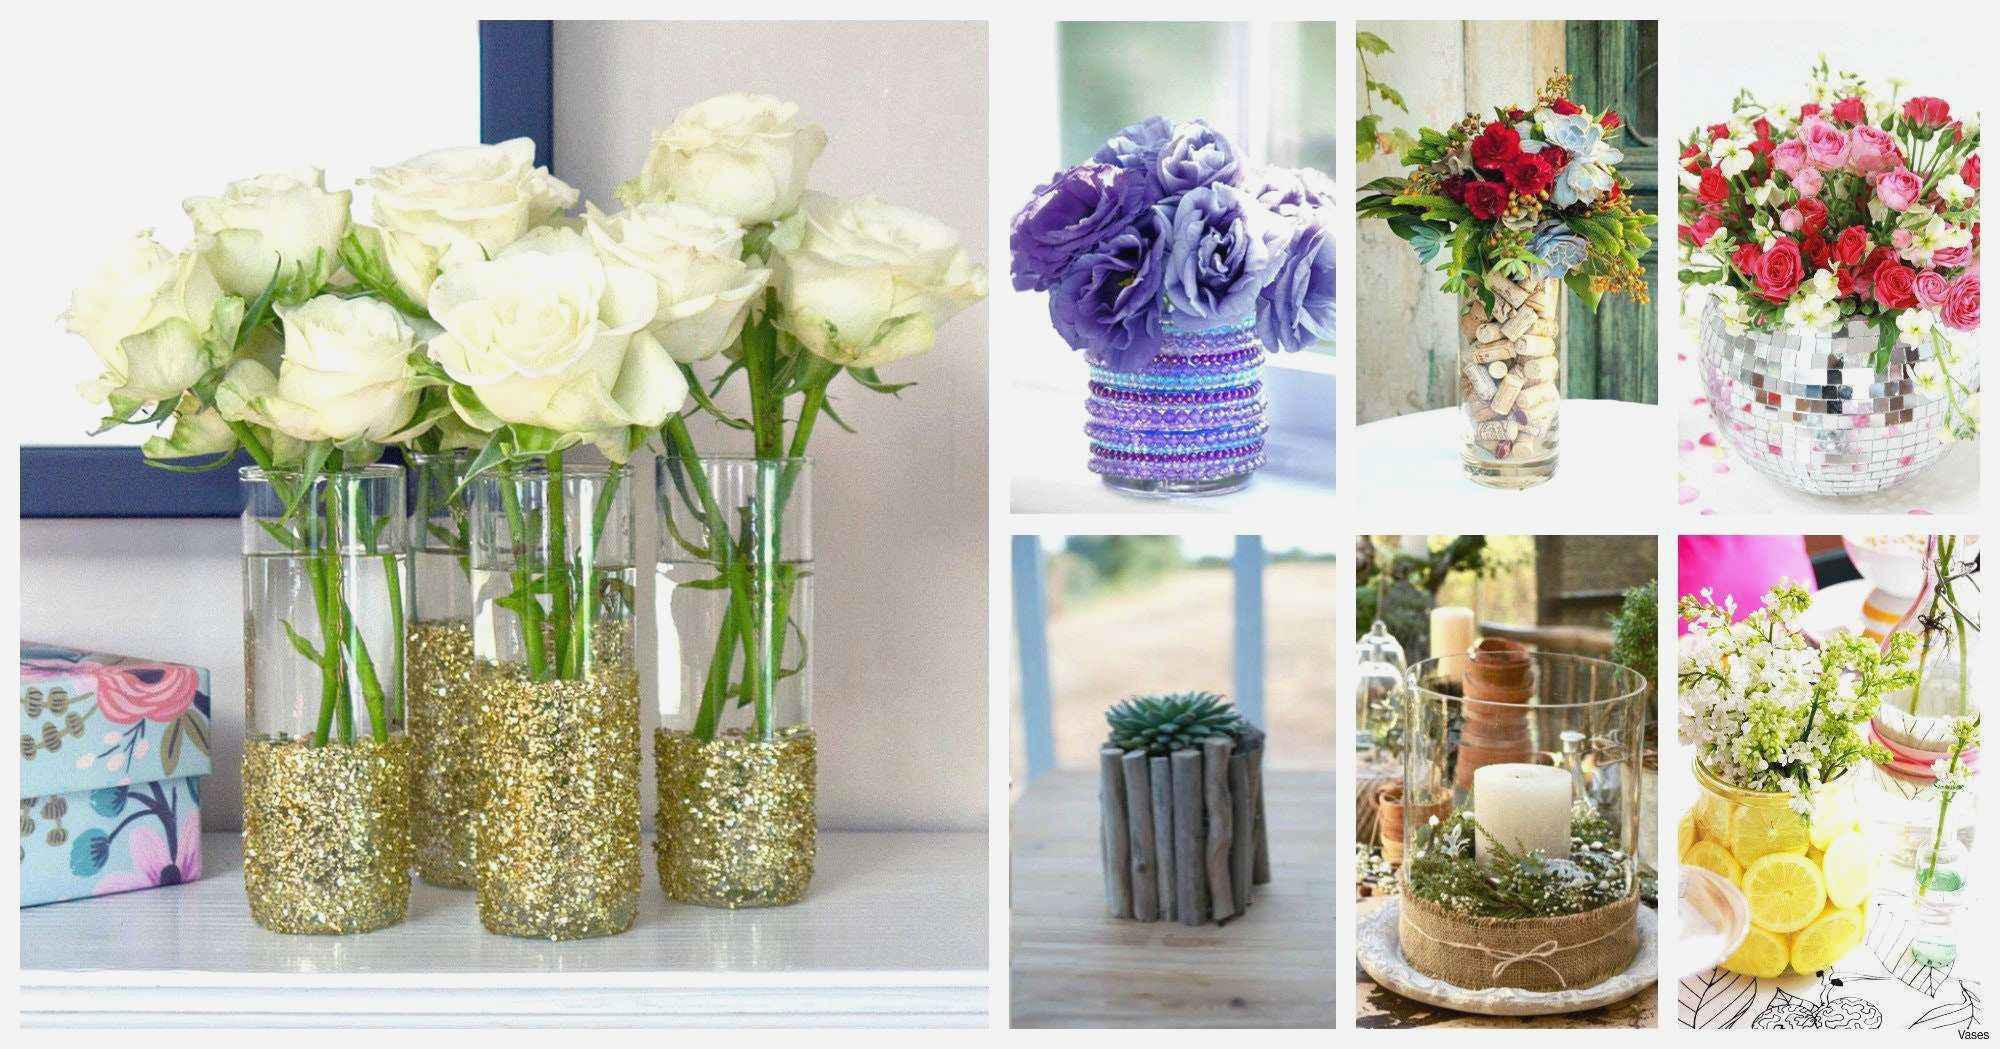 wedding centerpiece vases of country wedding decor ideas inspirational dsc h vases square regarding country wedding decor ideas inspirational dsc h vases square centerpiece dsc i 0d cheap ideas with unique into